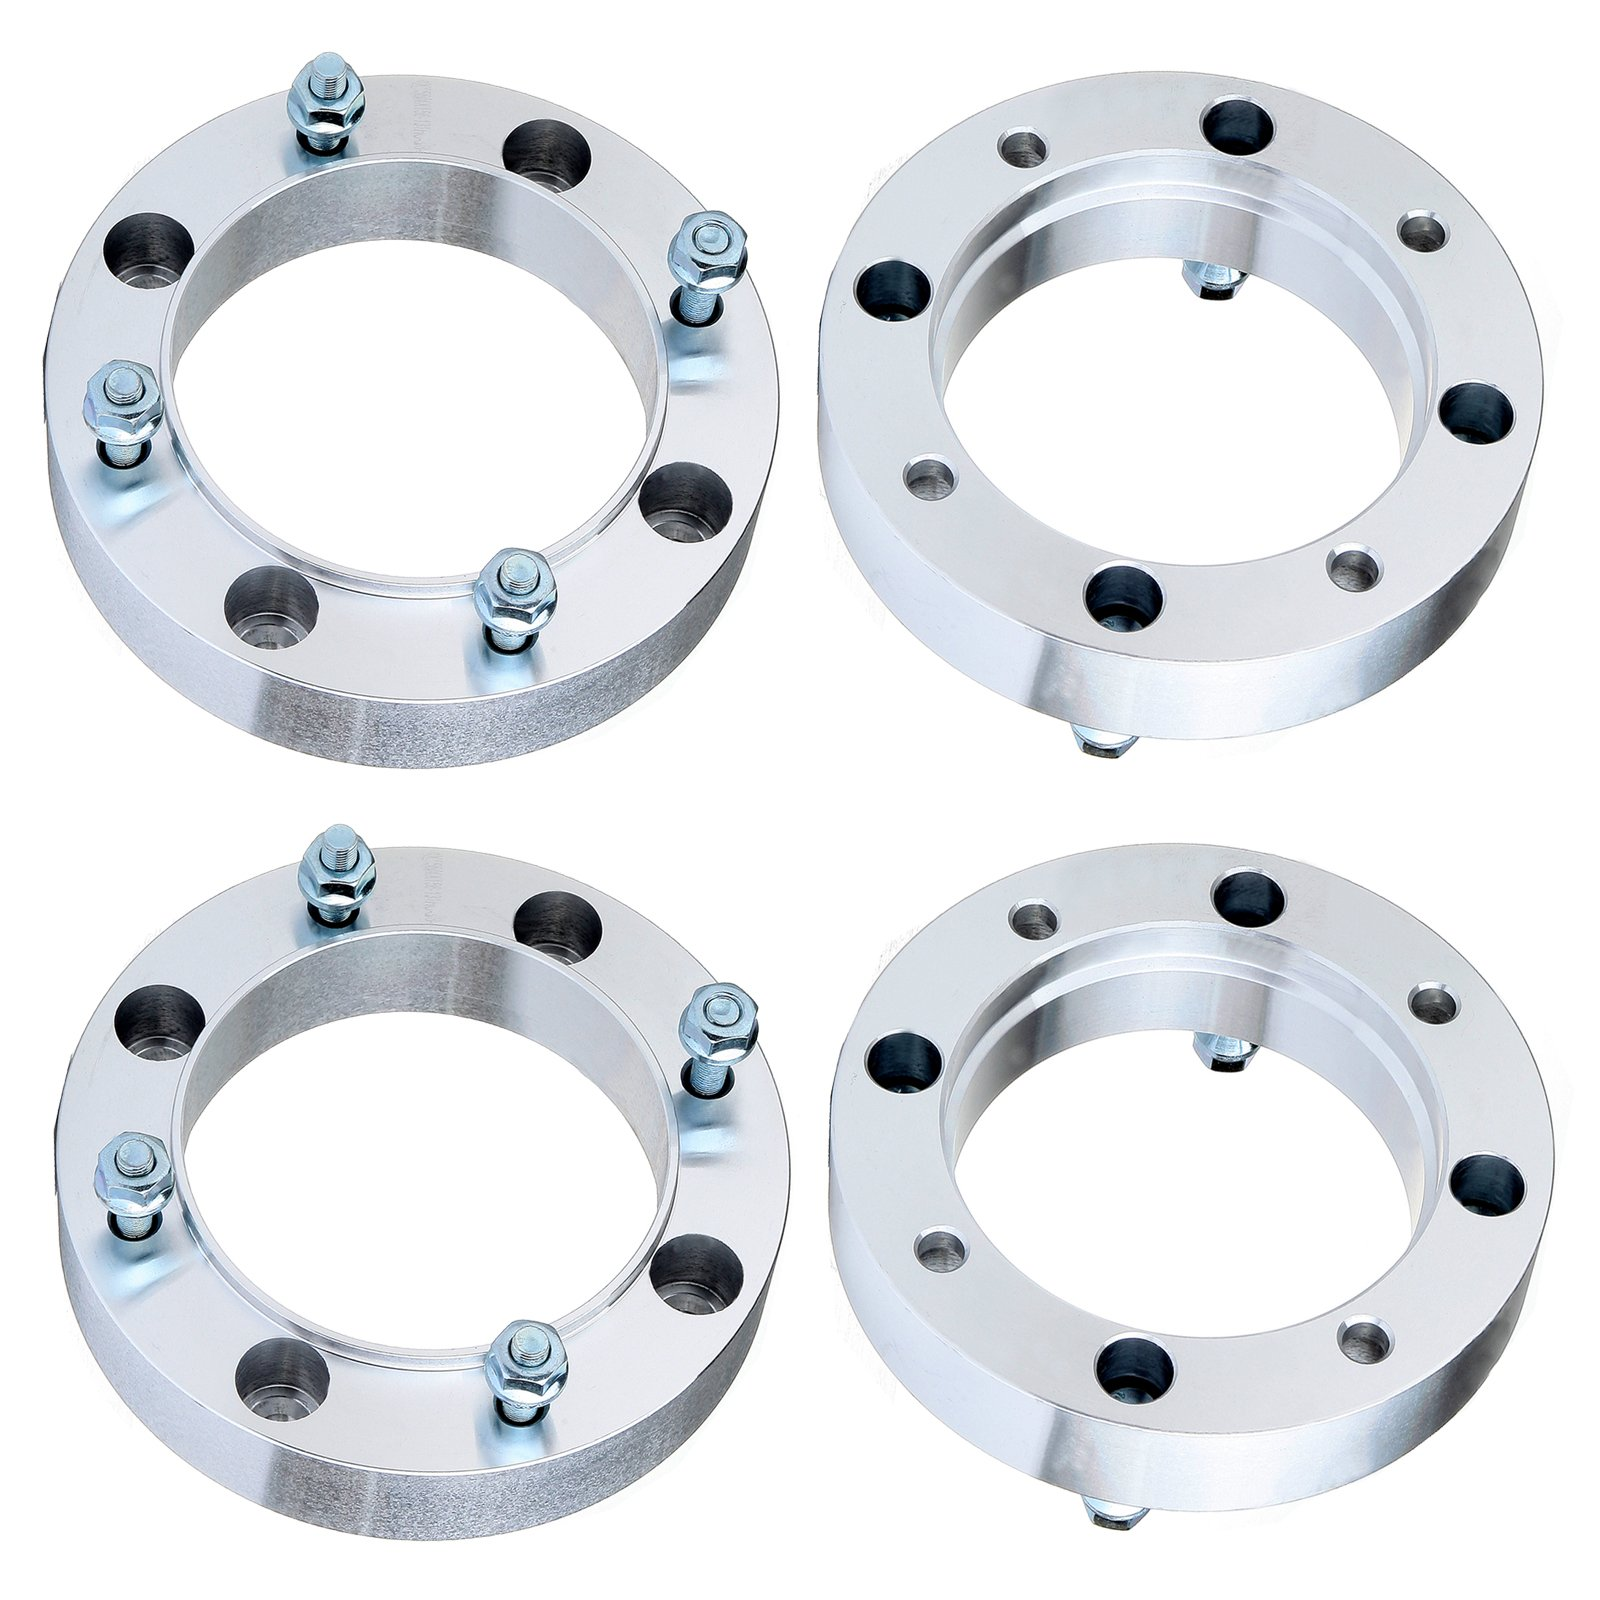 Wheel Spacers 4X156,ECCPP 1.5 inch Wheel Spacers 4 Lugs 4X 38mm 4x156mm for 1996-2012 Polaris Sportsman 500 with 3/8''x24 Studs